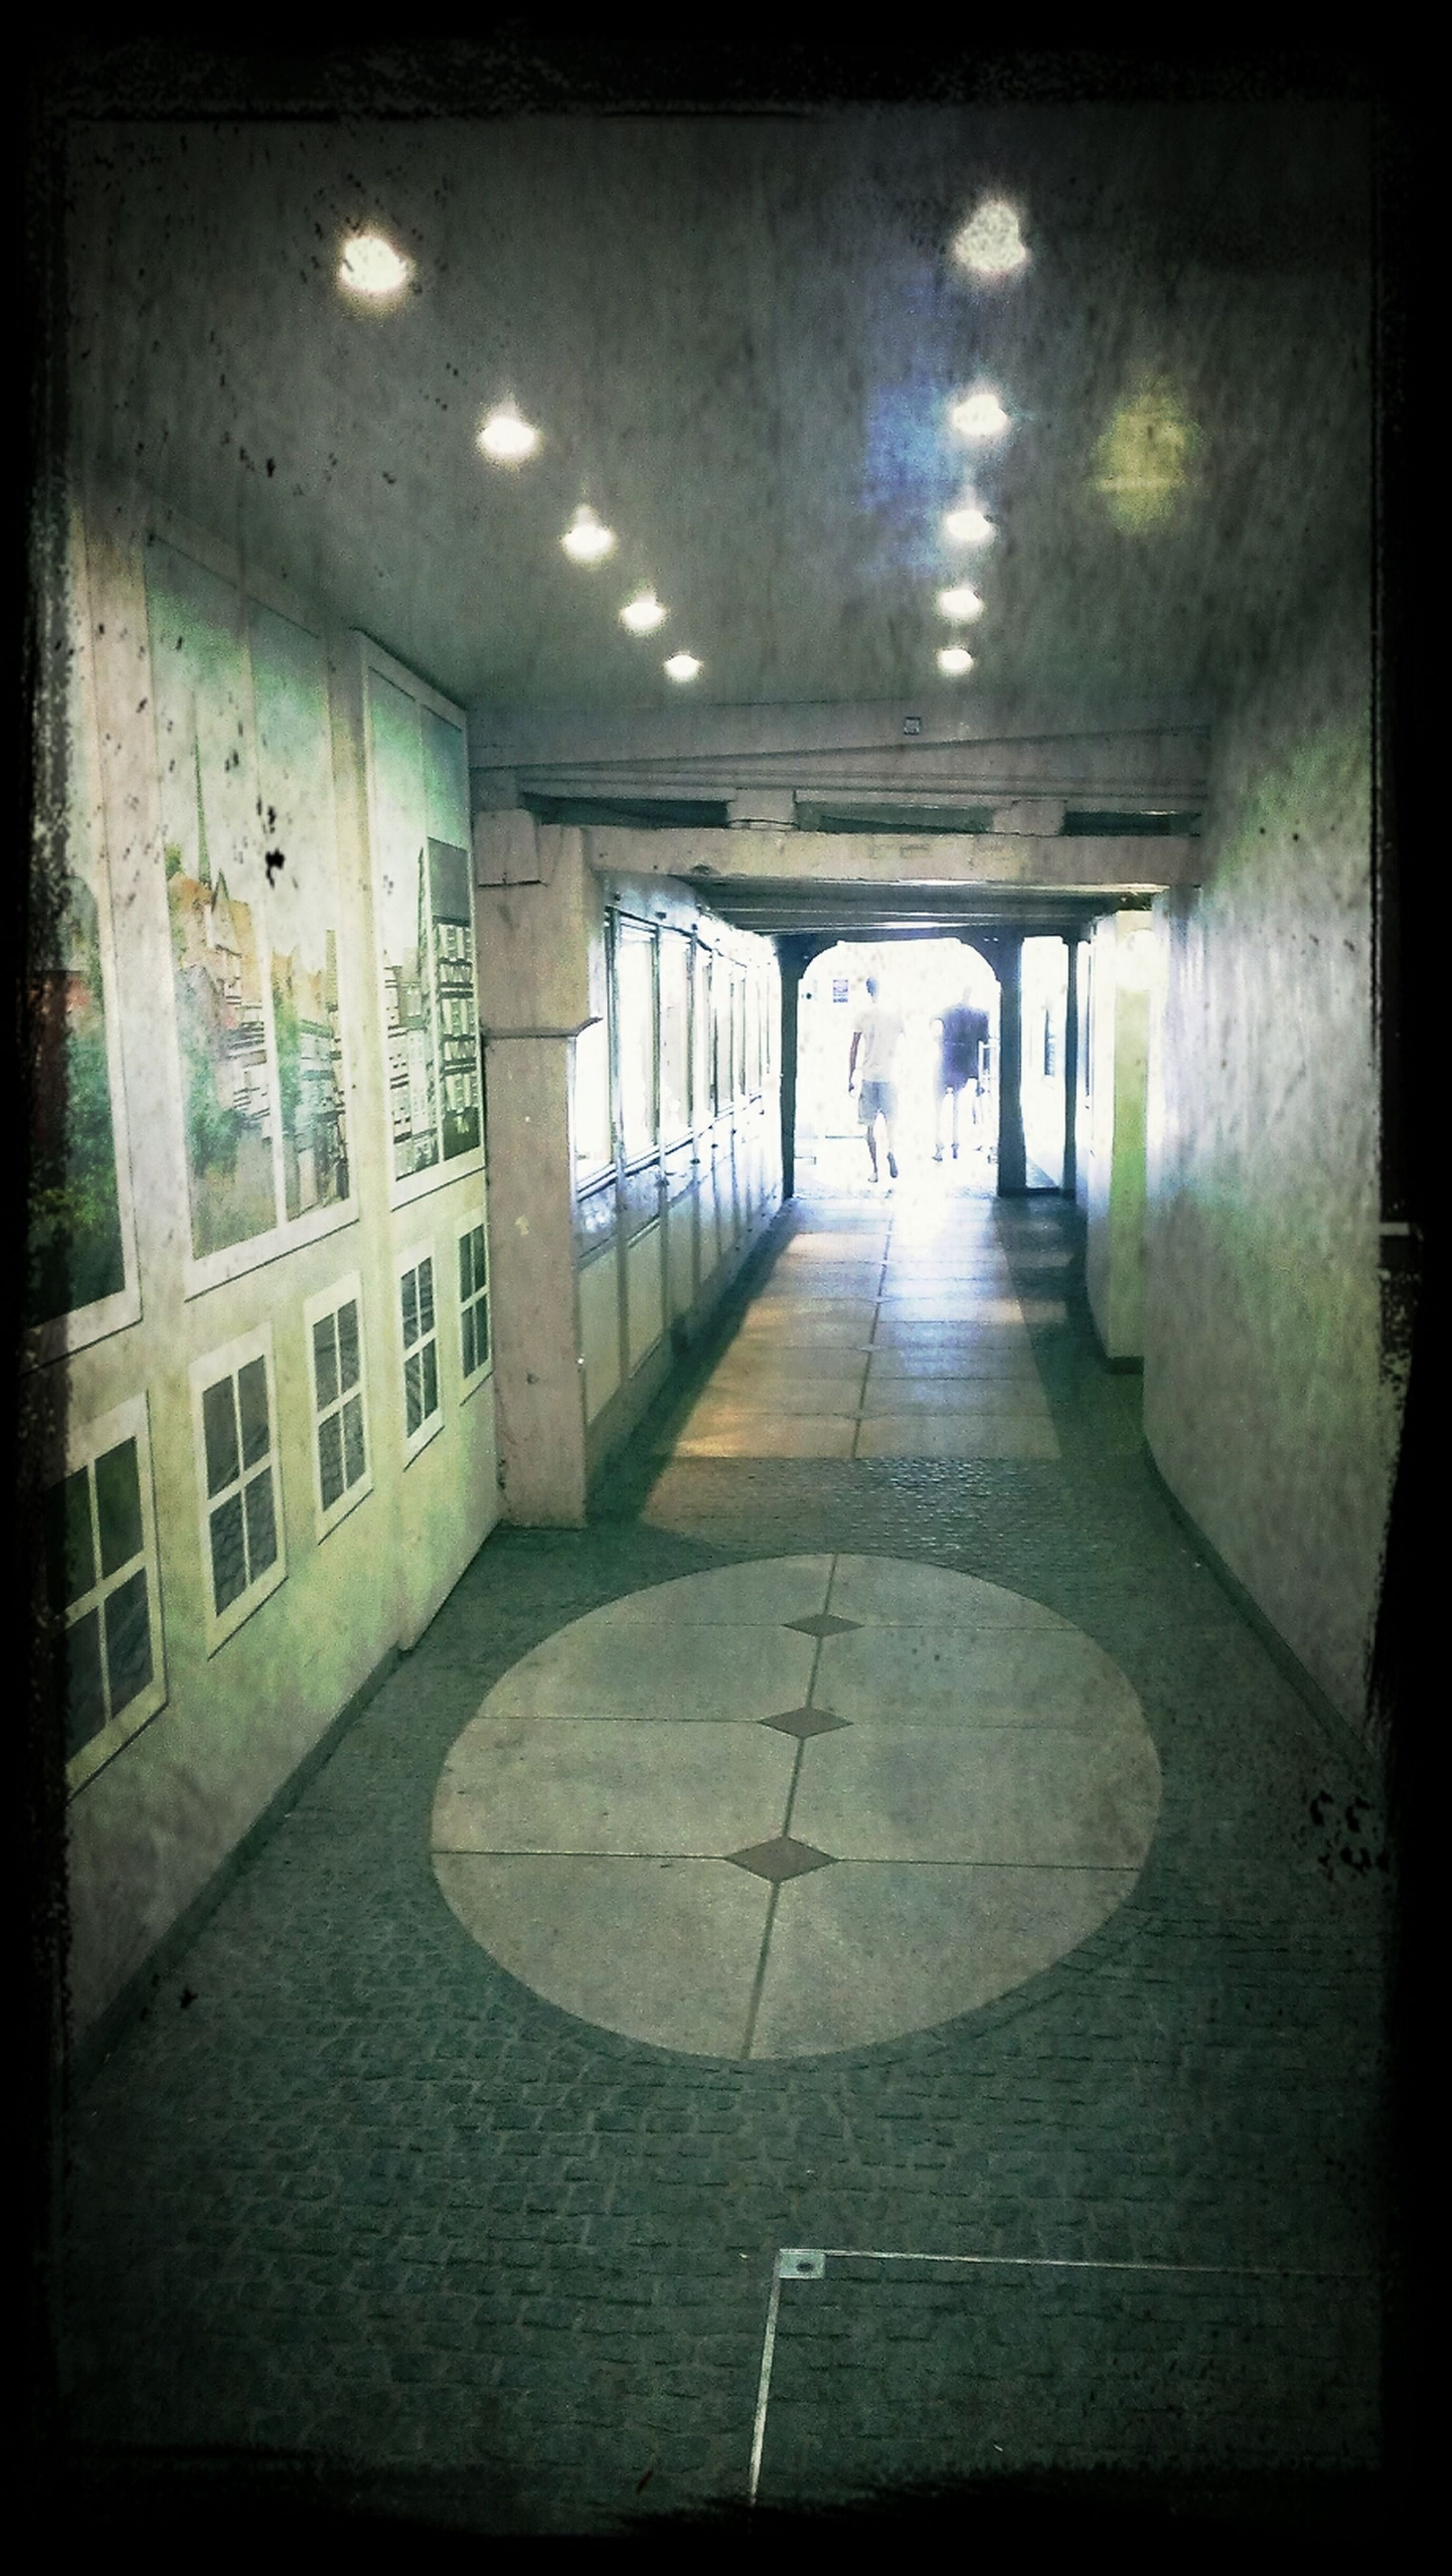 indoors, architecture, built structure, transfer print, corridor, empty, flooring, auto post production filter, ceiling, the way forward, absence, diminishing perspective, tiled floor, building, no people, reflection, day, window, illuminated, architectural column